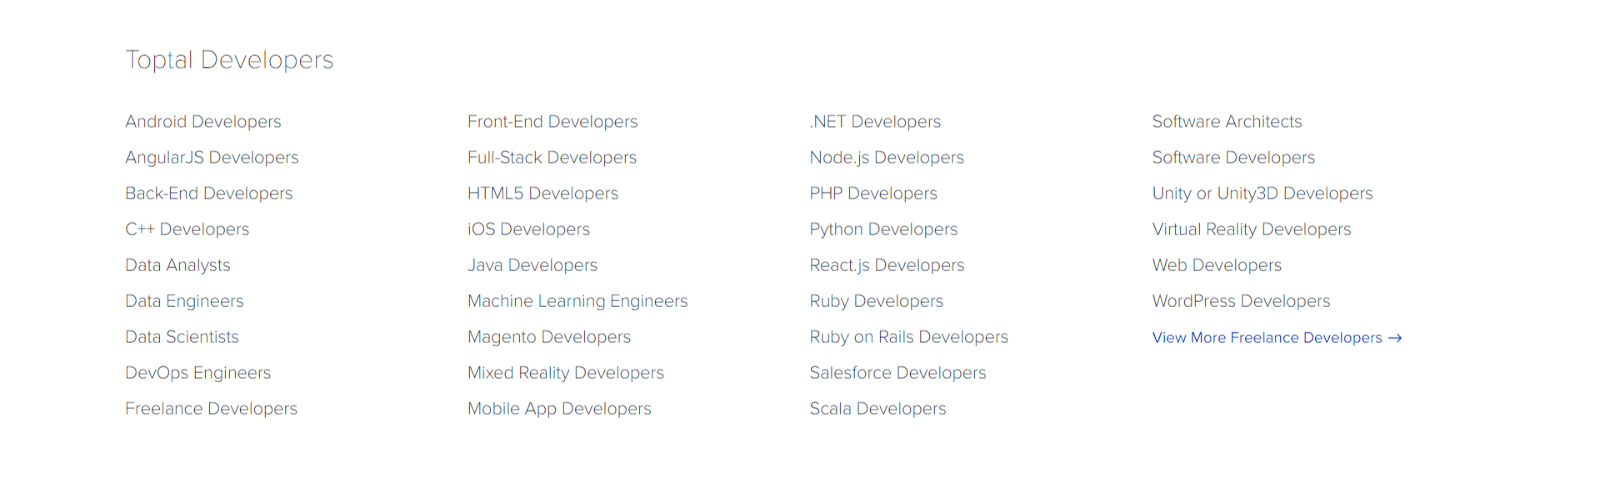 List of Toptal developers and their specialties, Toptal